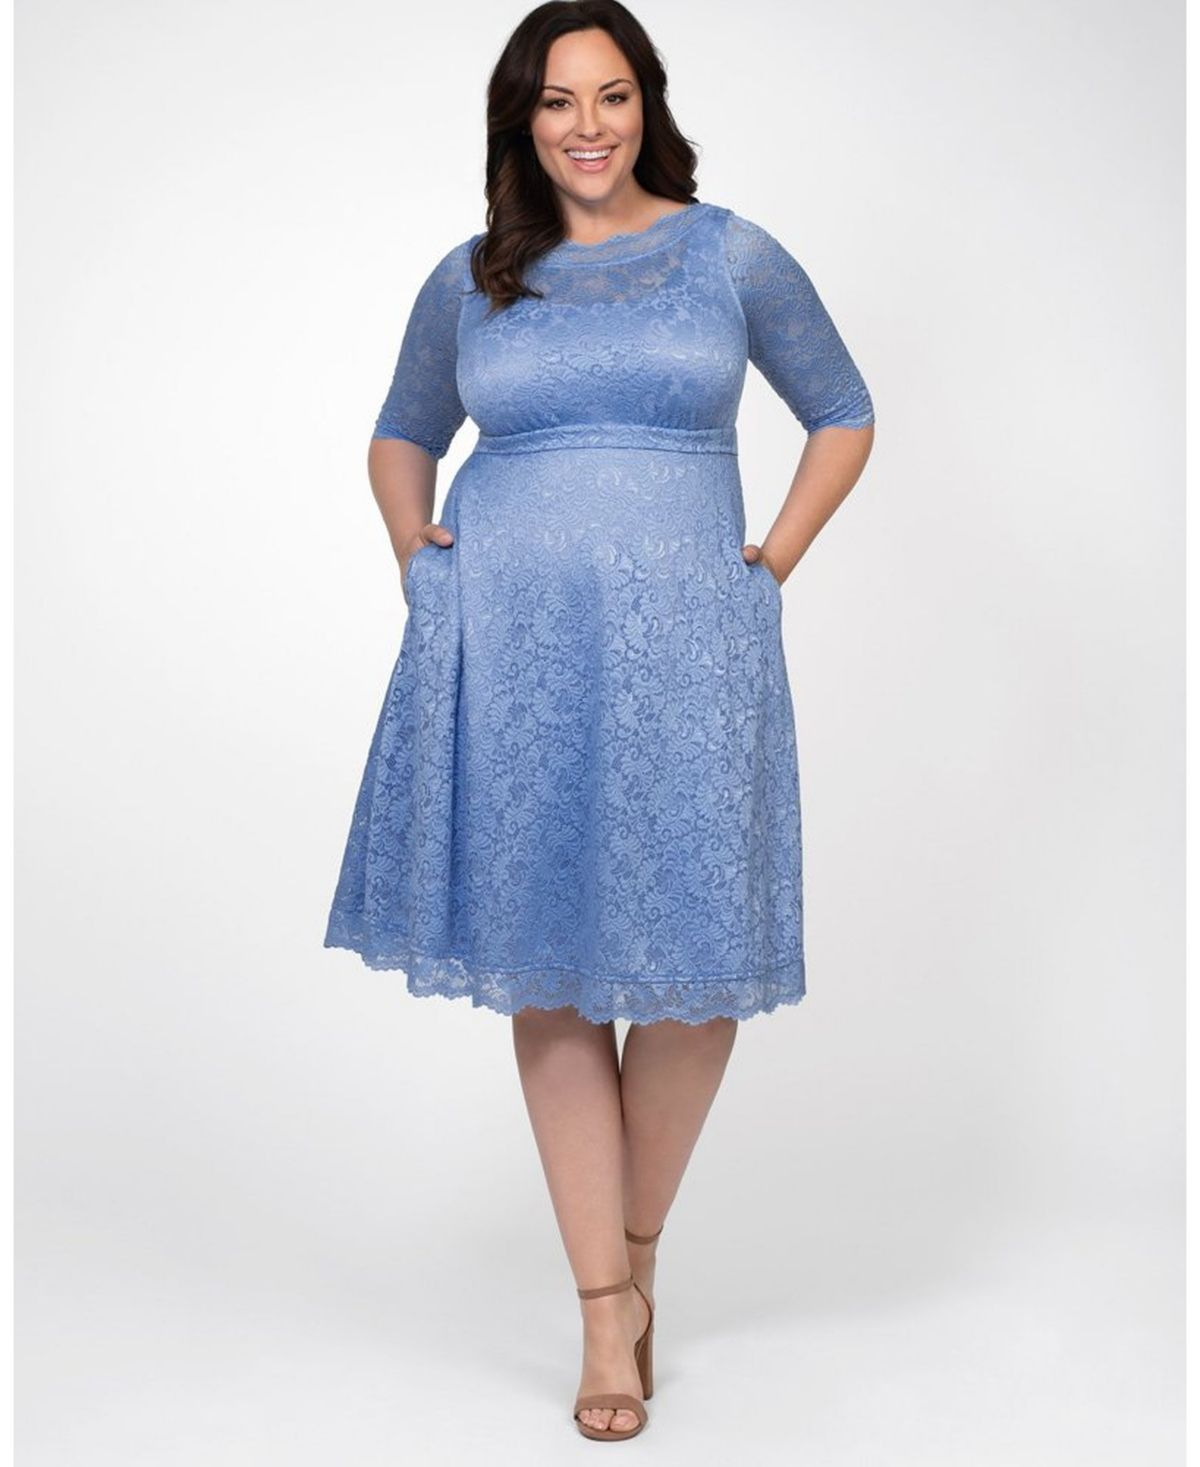 BLUE Coveted Drape Side Sketched Flower Print Dress Plus Size 16 to 32